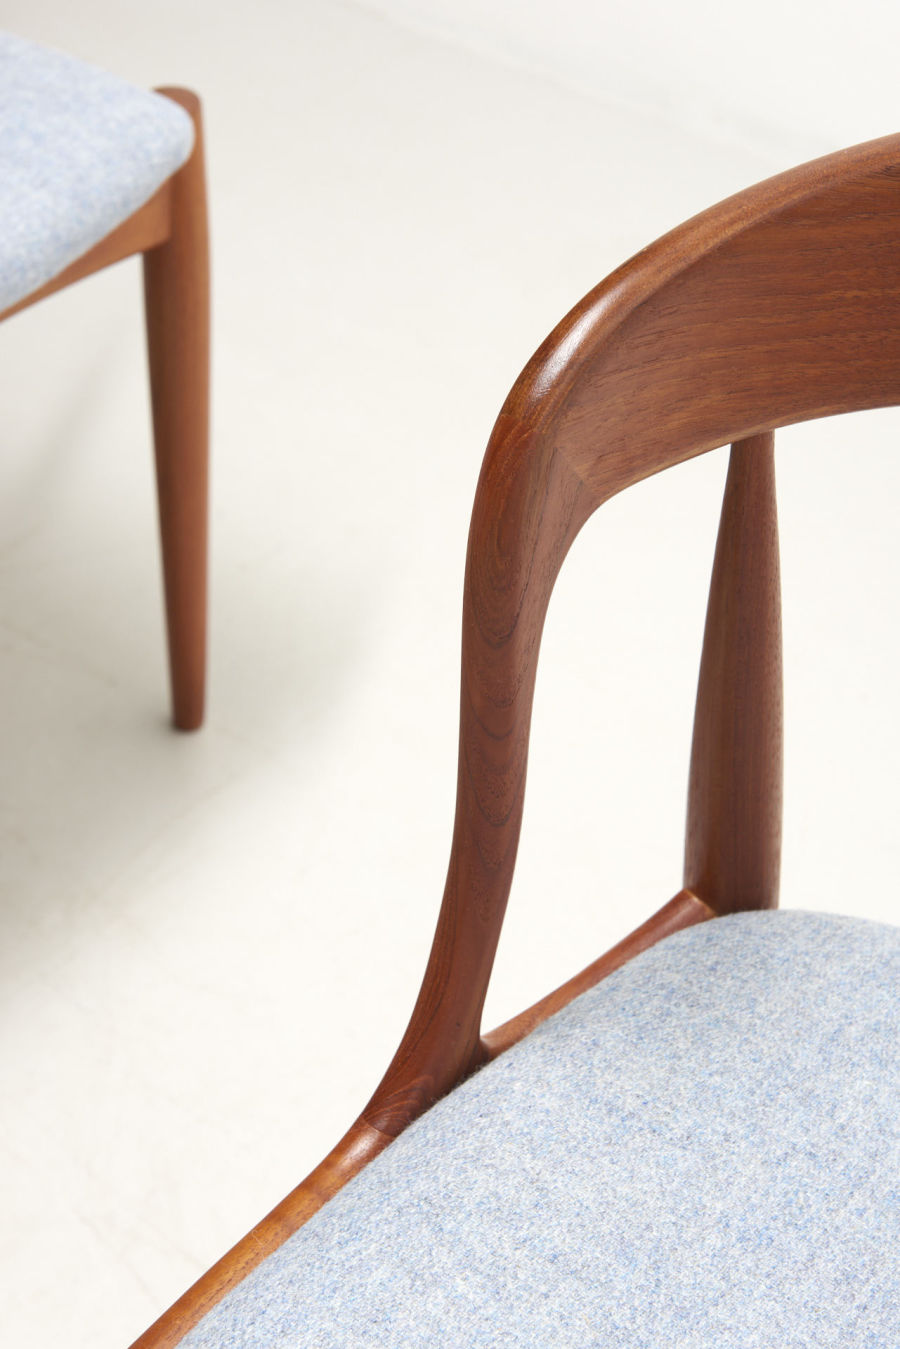 modestfurniture-vintage-2164-johannes-andersen-dining-chairs-uldum-model-1606